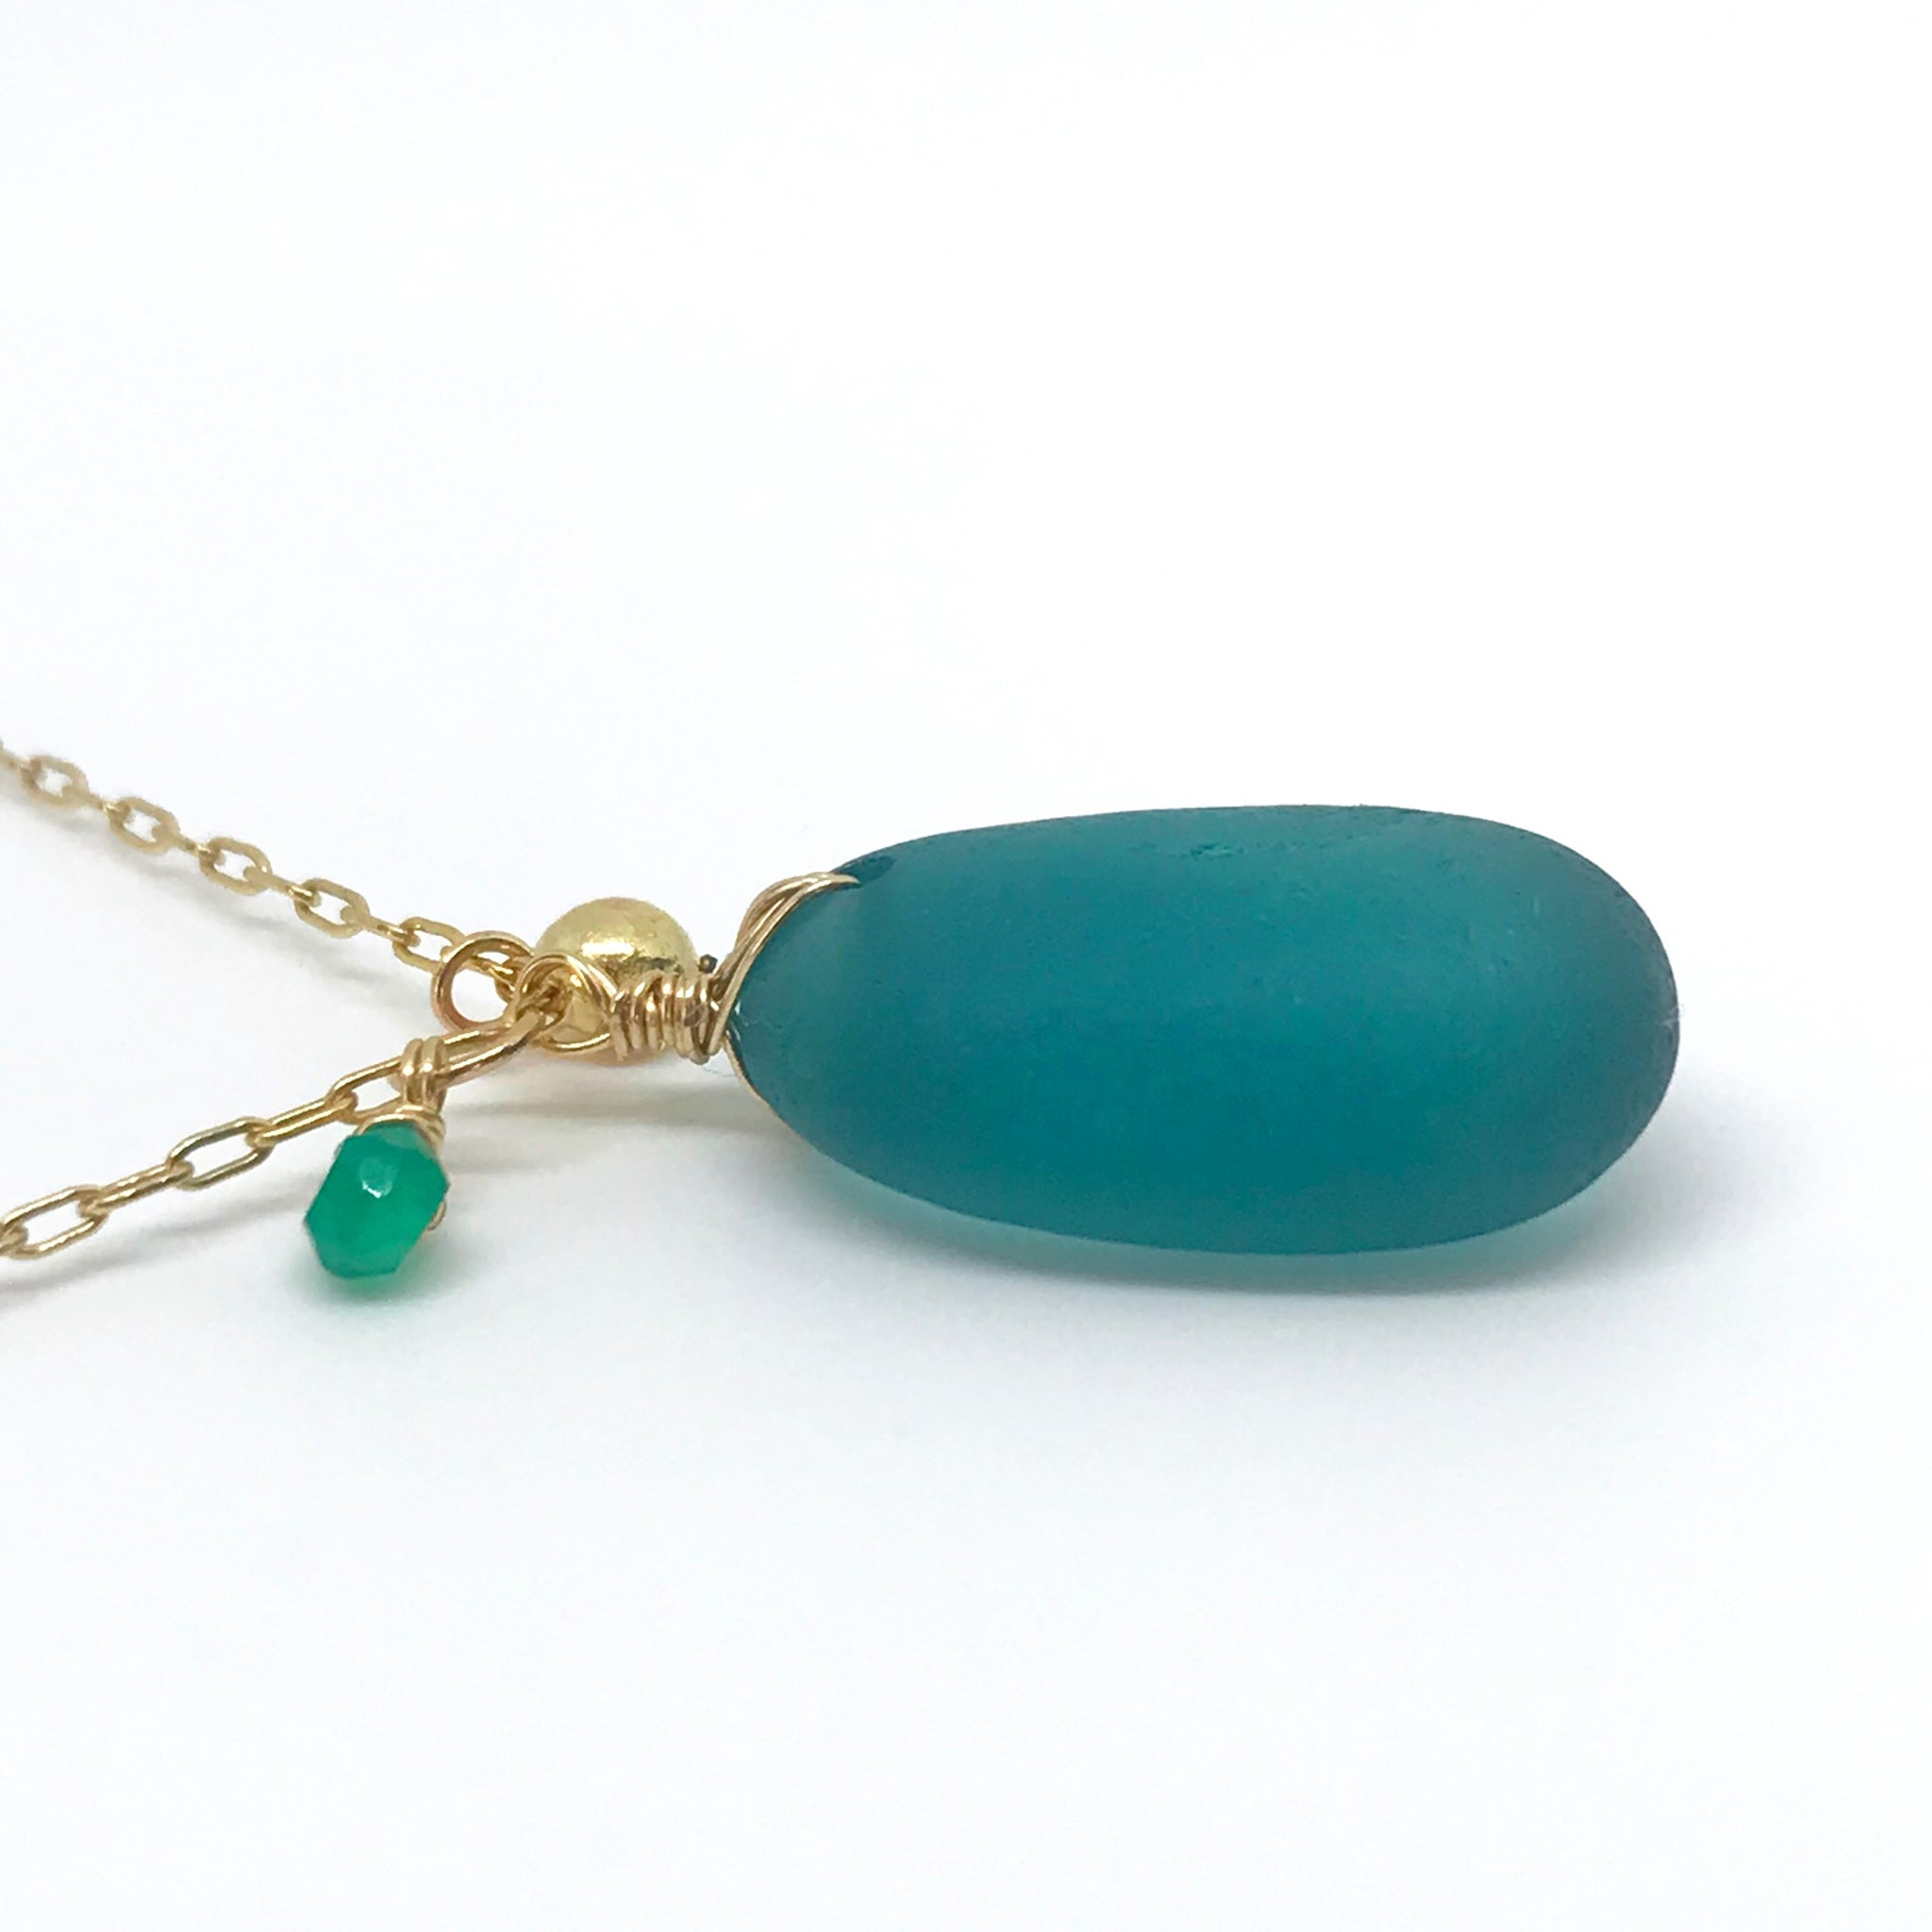 Gold charm necklace with Teal Seaglass Necklace and pebble charm – Kriket Broadhurst jewellery Australian made